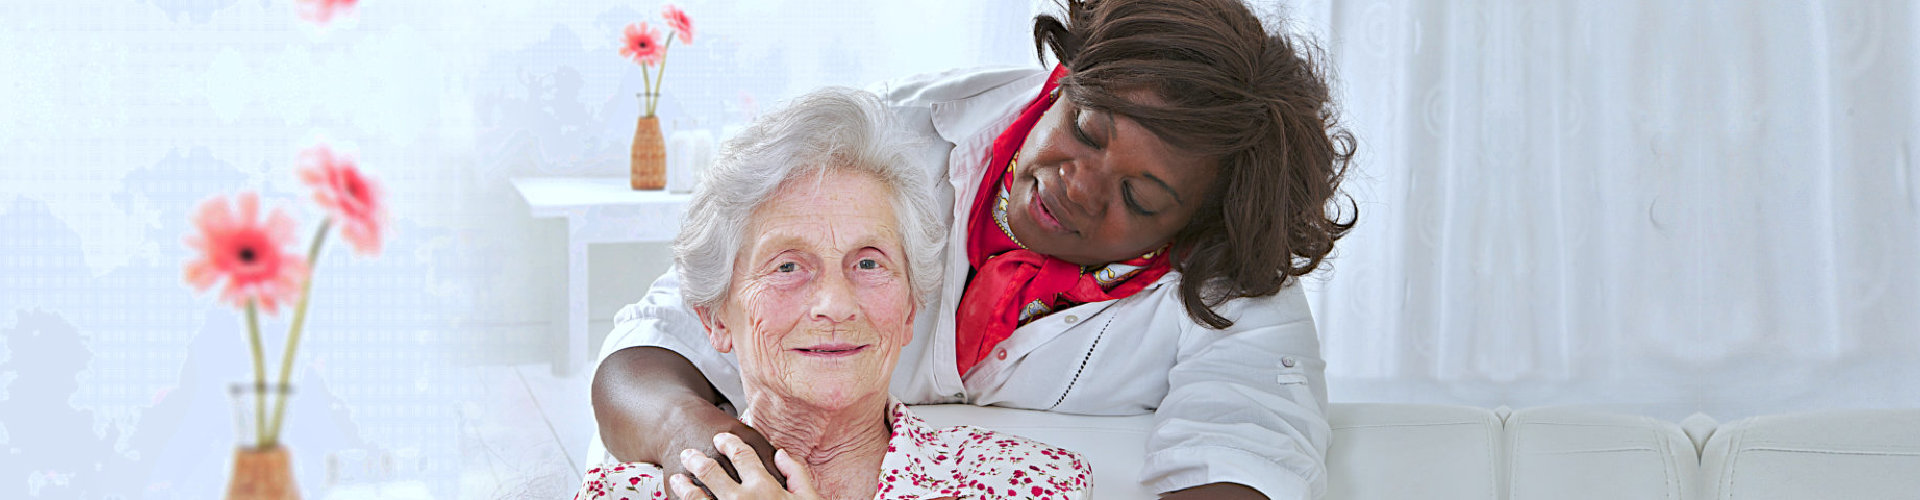 caregiver looking tenderly at her patient